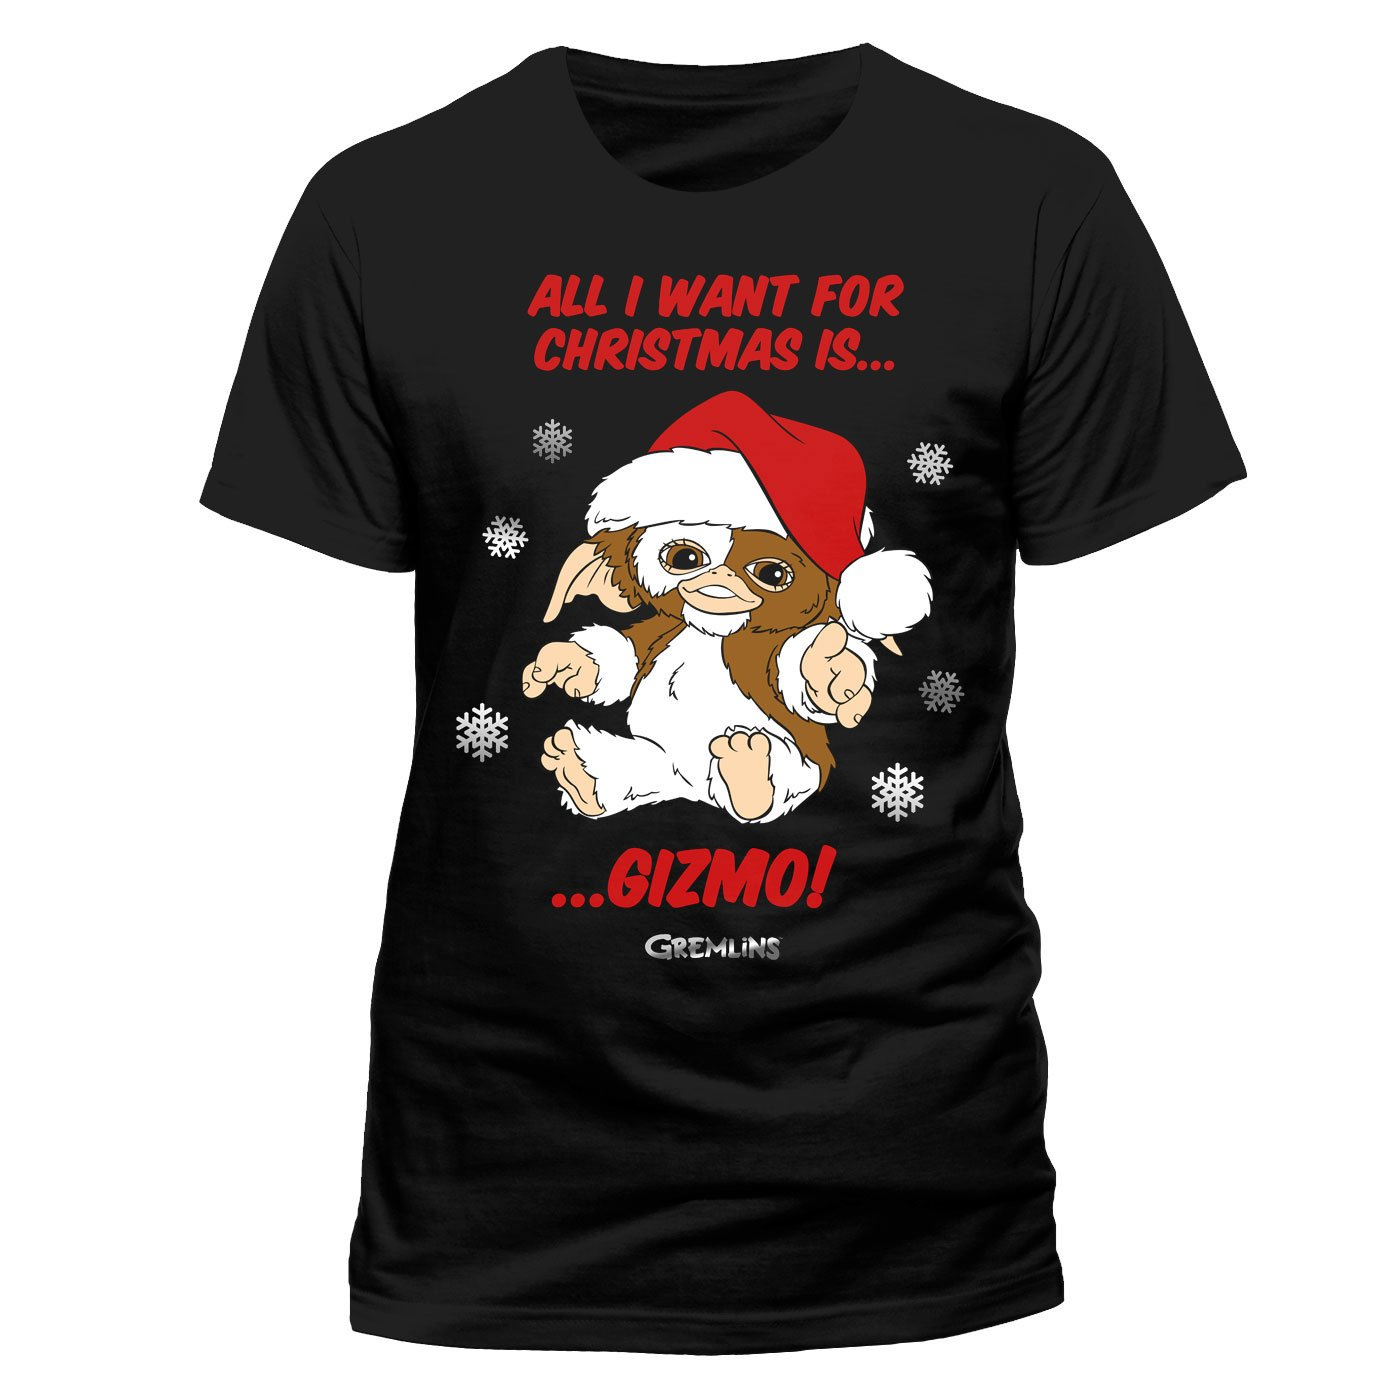 Gremlins T-Shirt All I Want Is Gizmo Size L